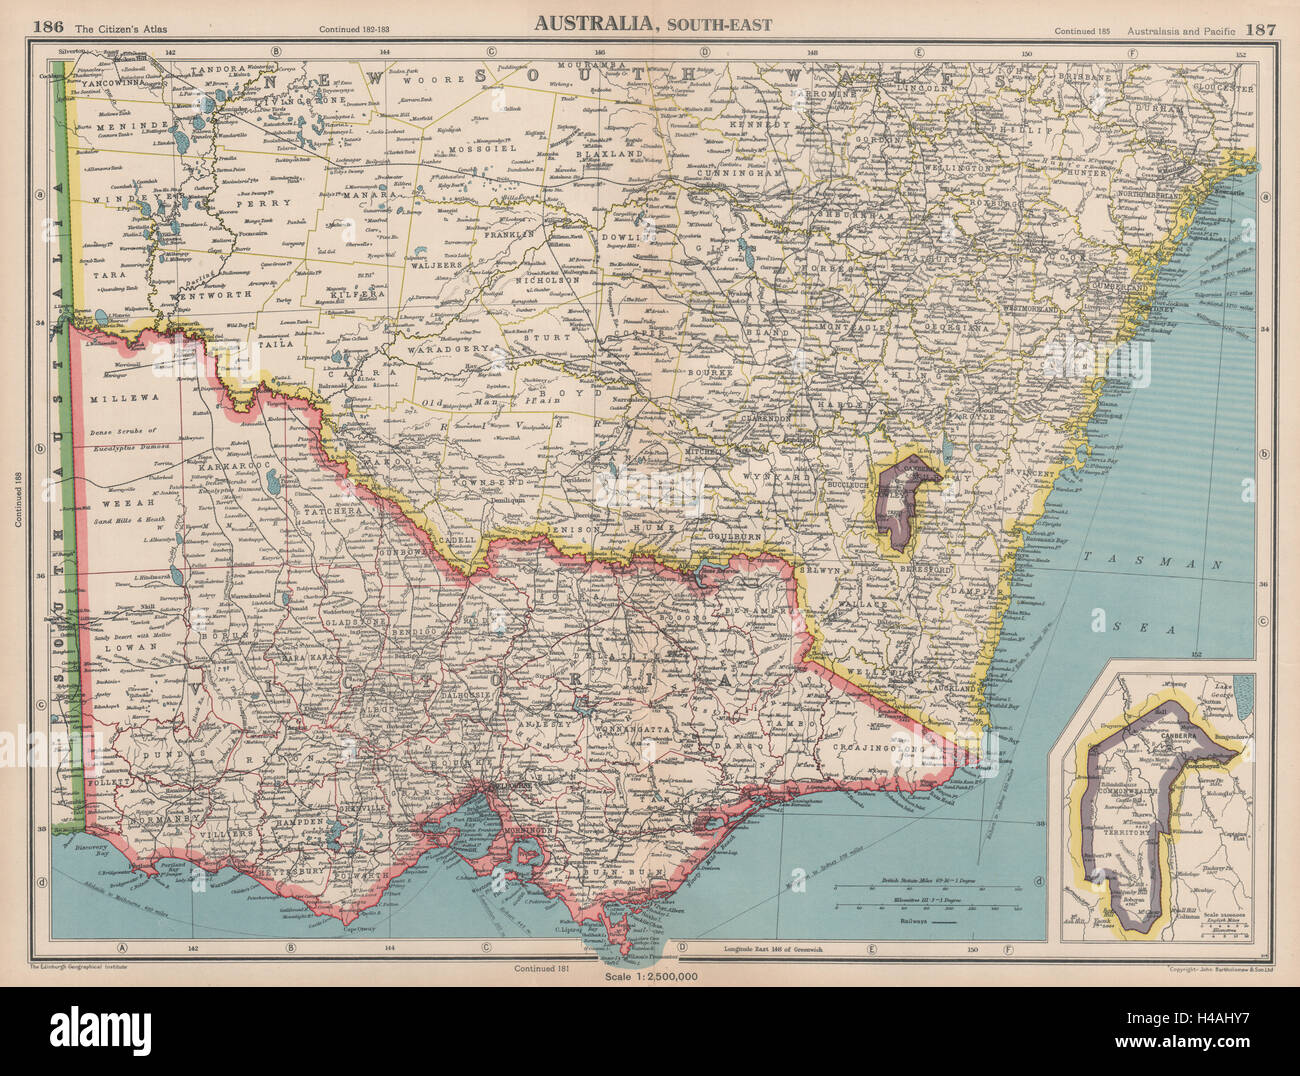 south east australia victoria nsw federal capital territory jervis bay 1944 map